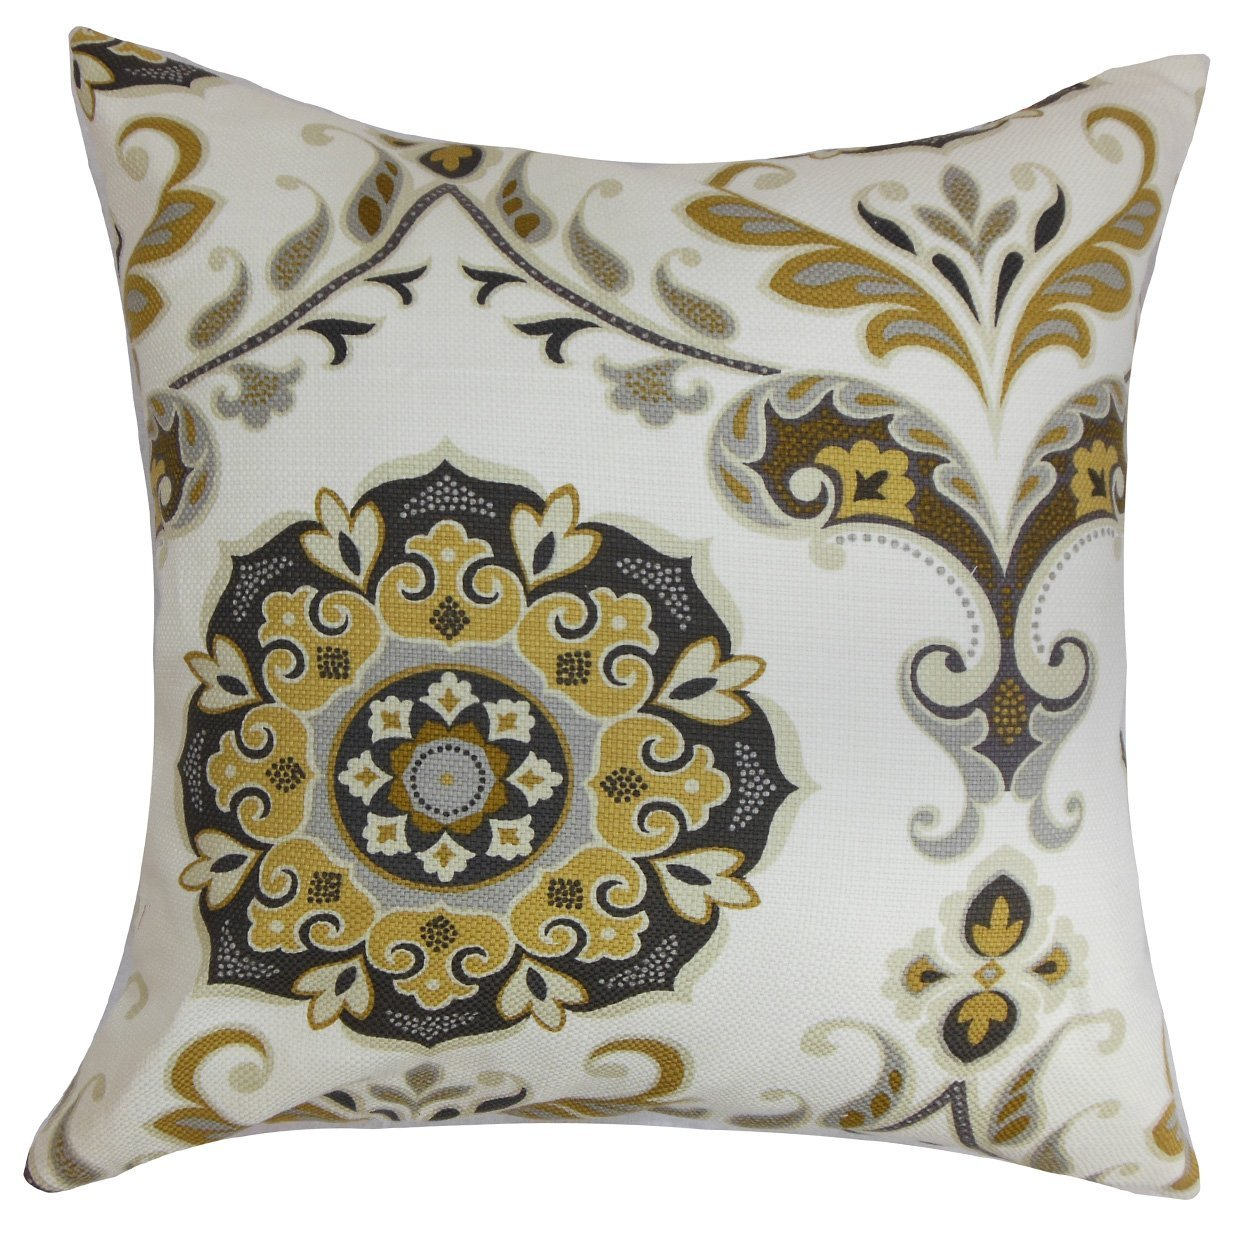 The Pillow Collection Orana Floral Bedding Sham Brown Gray King//20 x 36